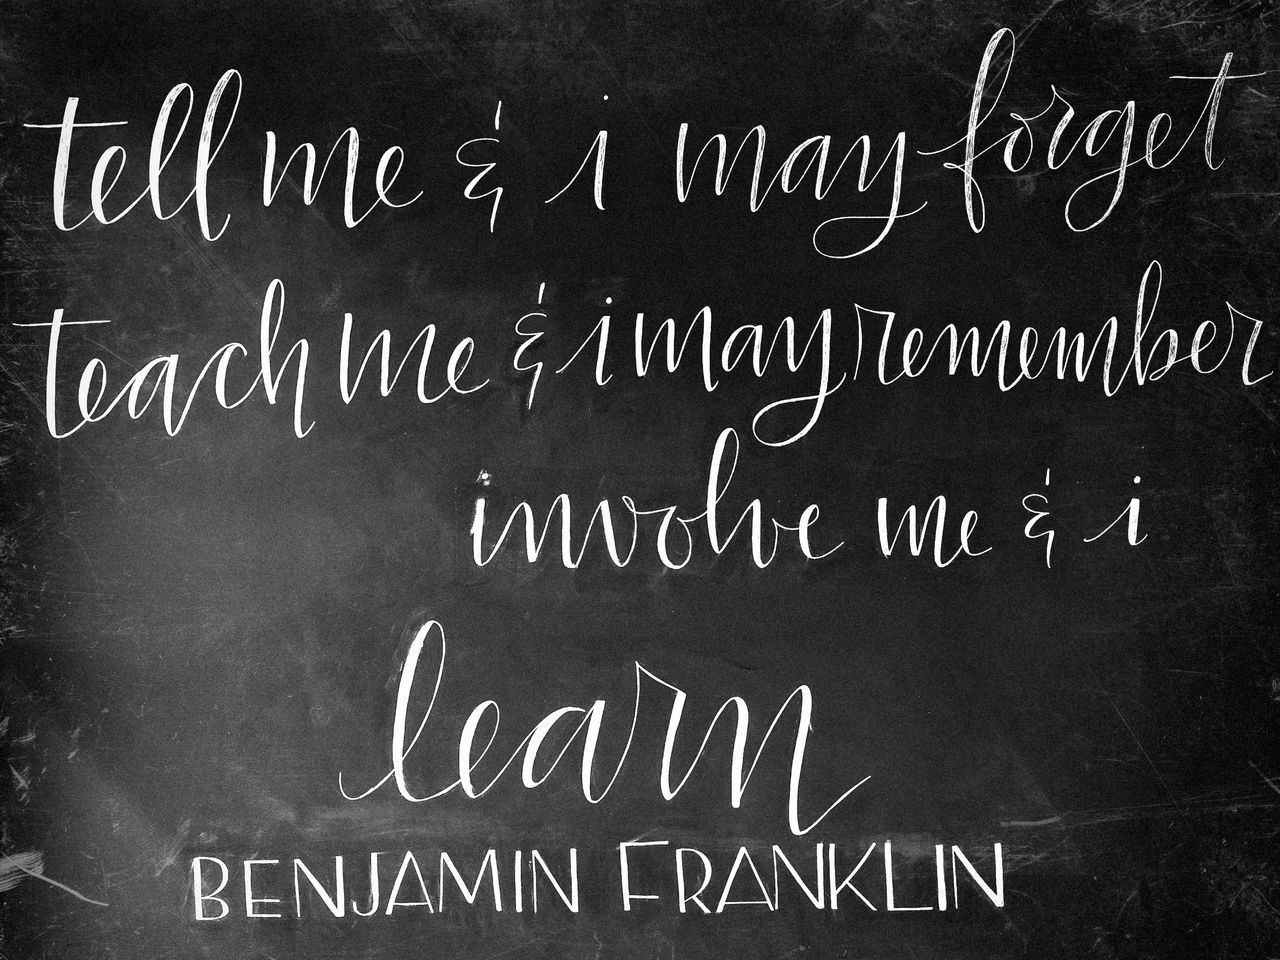 Benjamin Benjamin Frankliin Blackboard  Chaclk Chalk Class Communication Education Handwriting  Indoors  Learn Learning Message No People Text